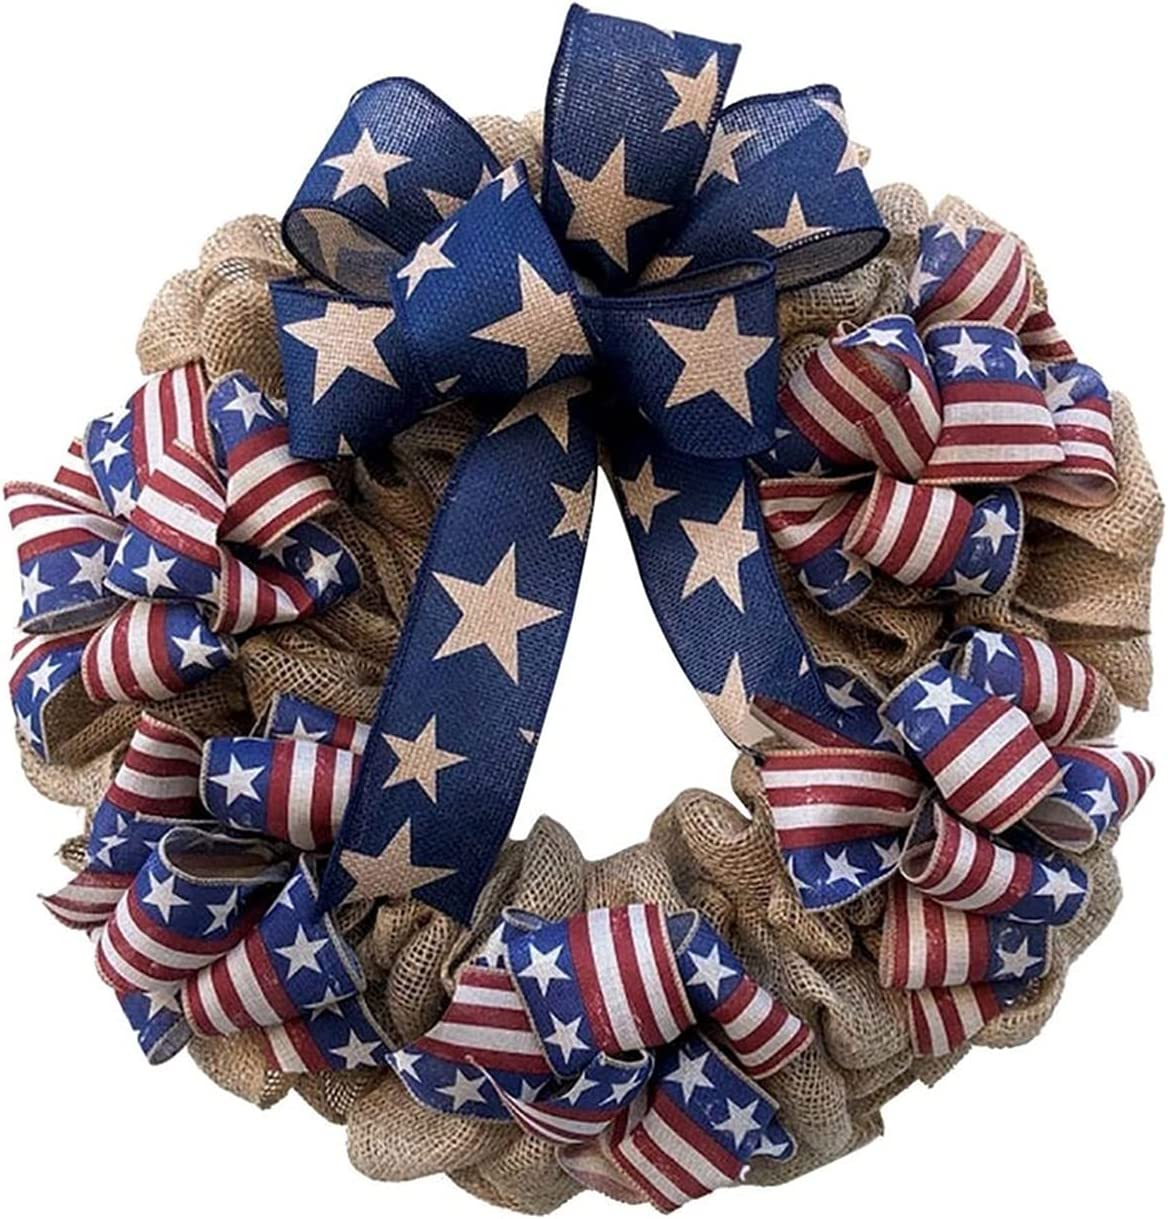 DONGZHI Front Door online shopping Decor Safety and trust Wreath Patriotic July Americana 4th Wre